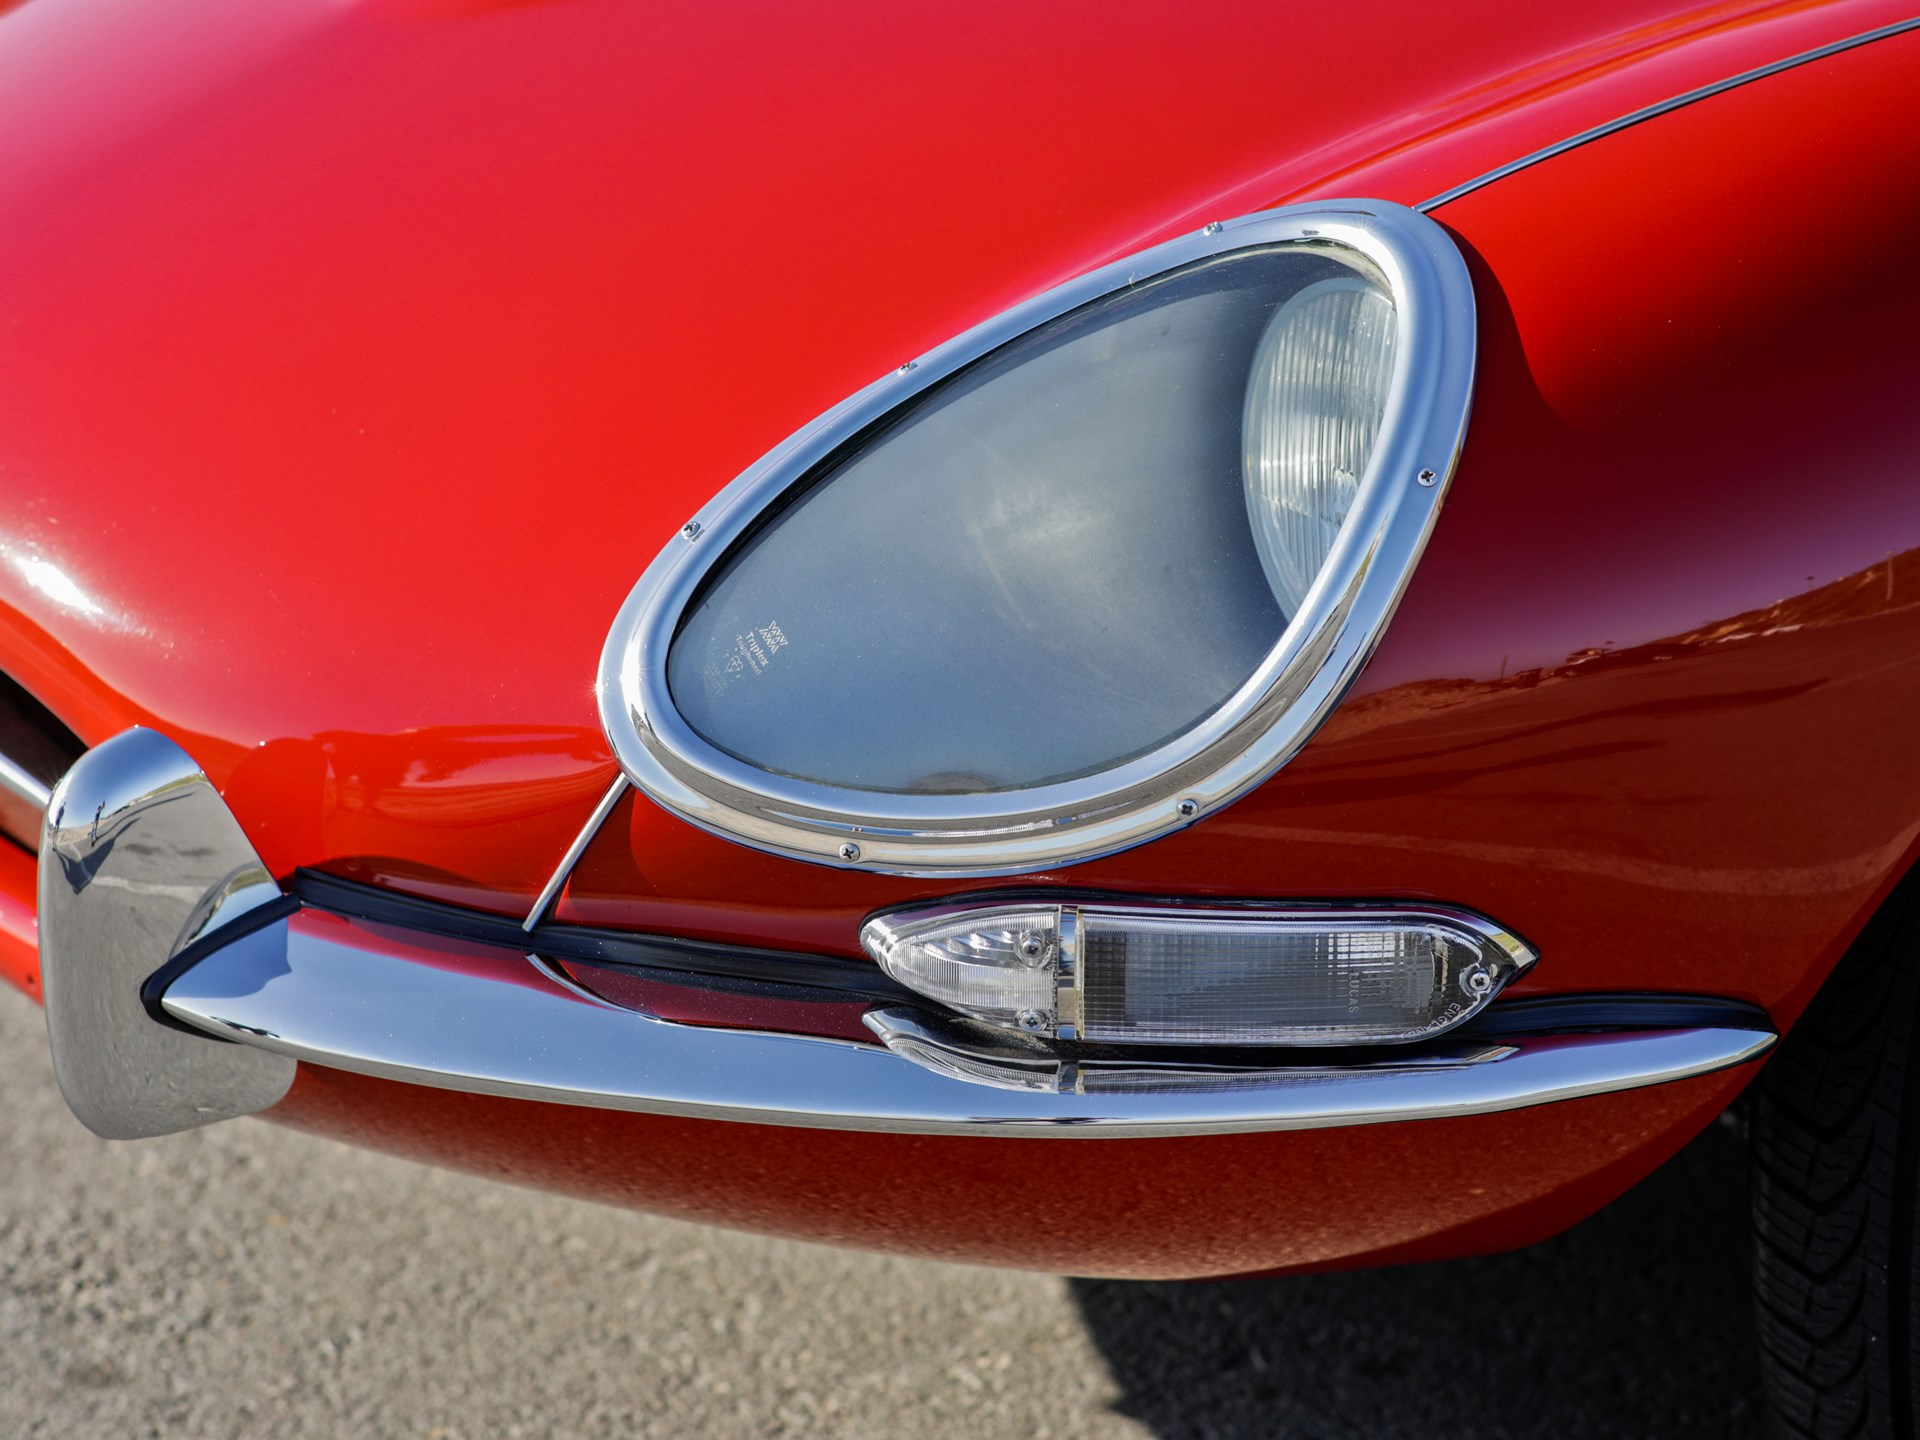 1966 Jaguar E-Type Series 1 4.2-Litre Roadster